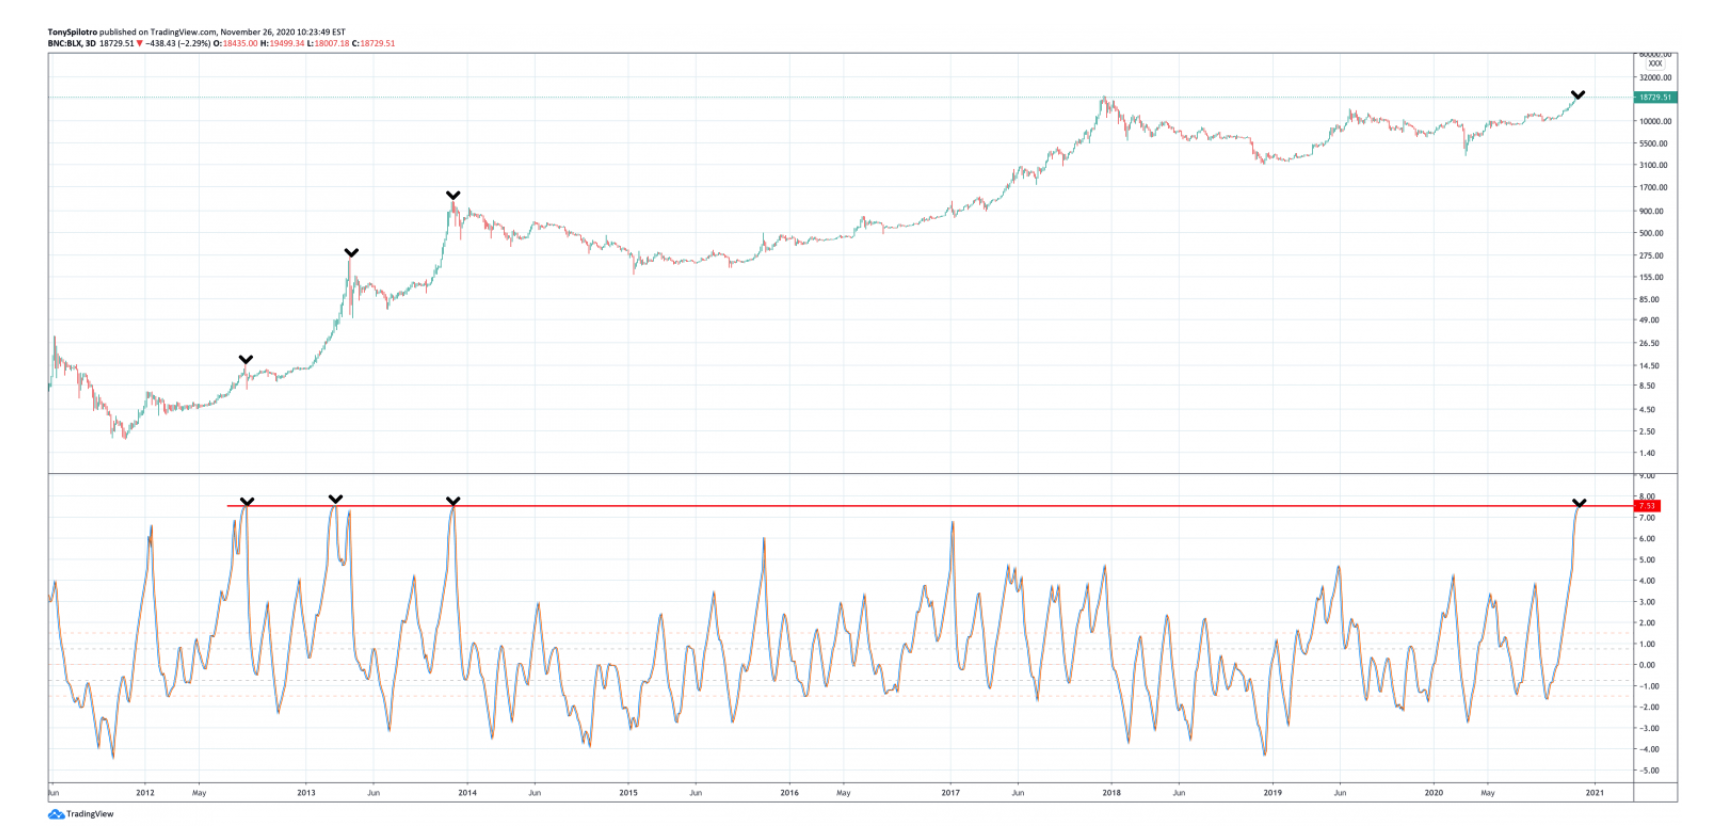 will-a-historic-selloff-follow-this-previously-unstoppable-bitcoin-price-rally